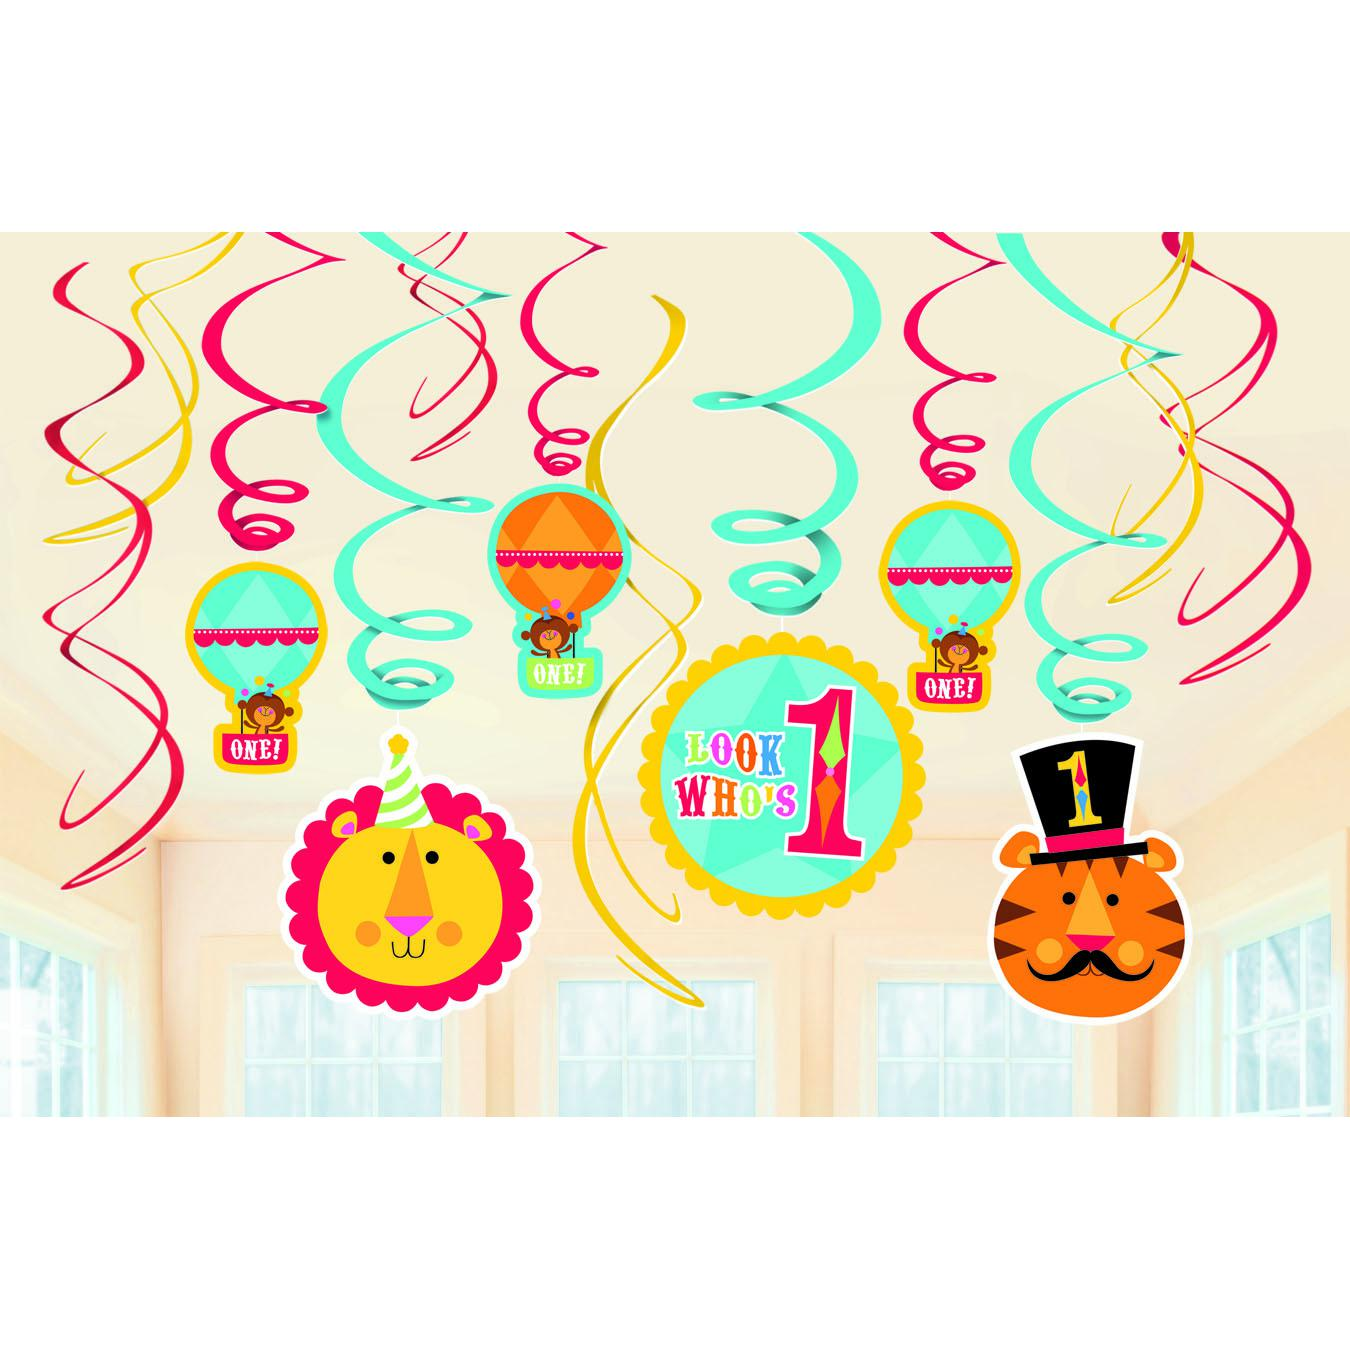 AGED 60 60TH Chevron HAPPY BIRTHDAY PARTY SWIRLS HANGING DECORATION PACK OF 12